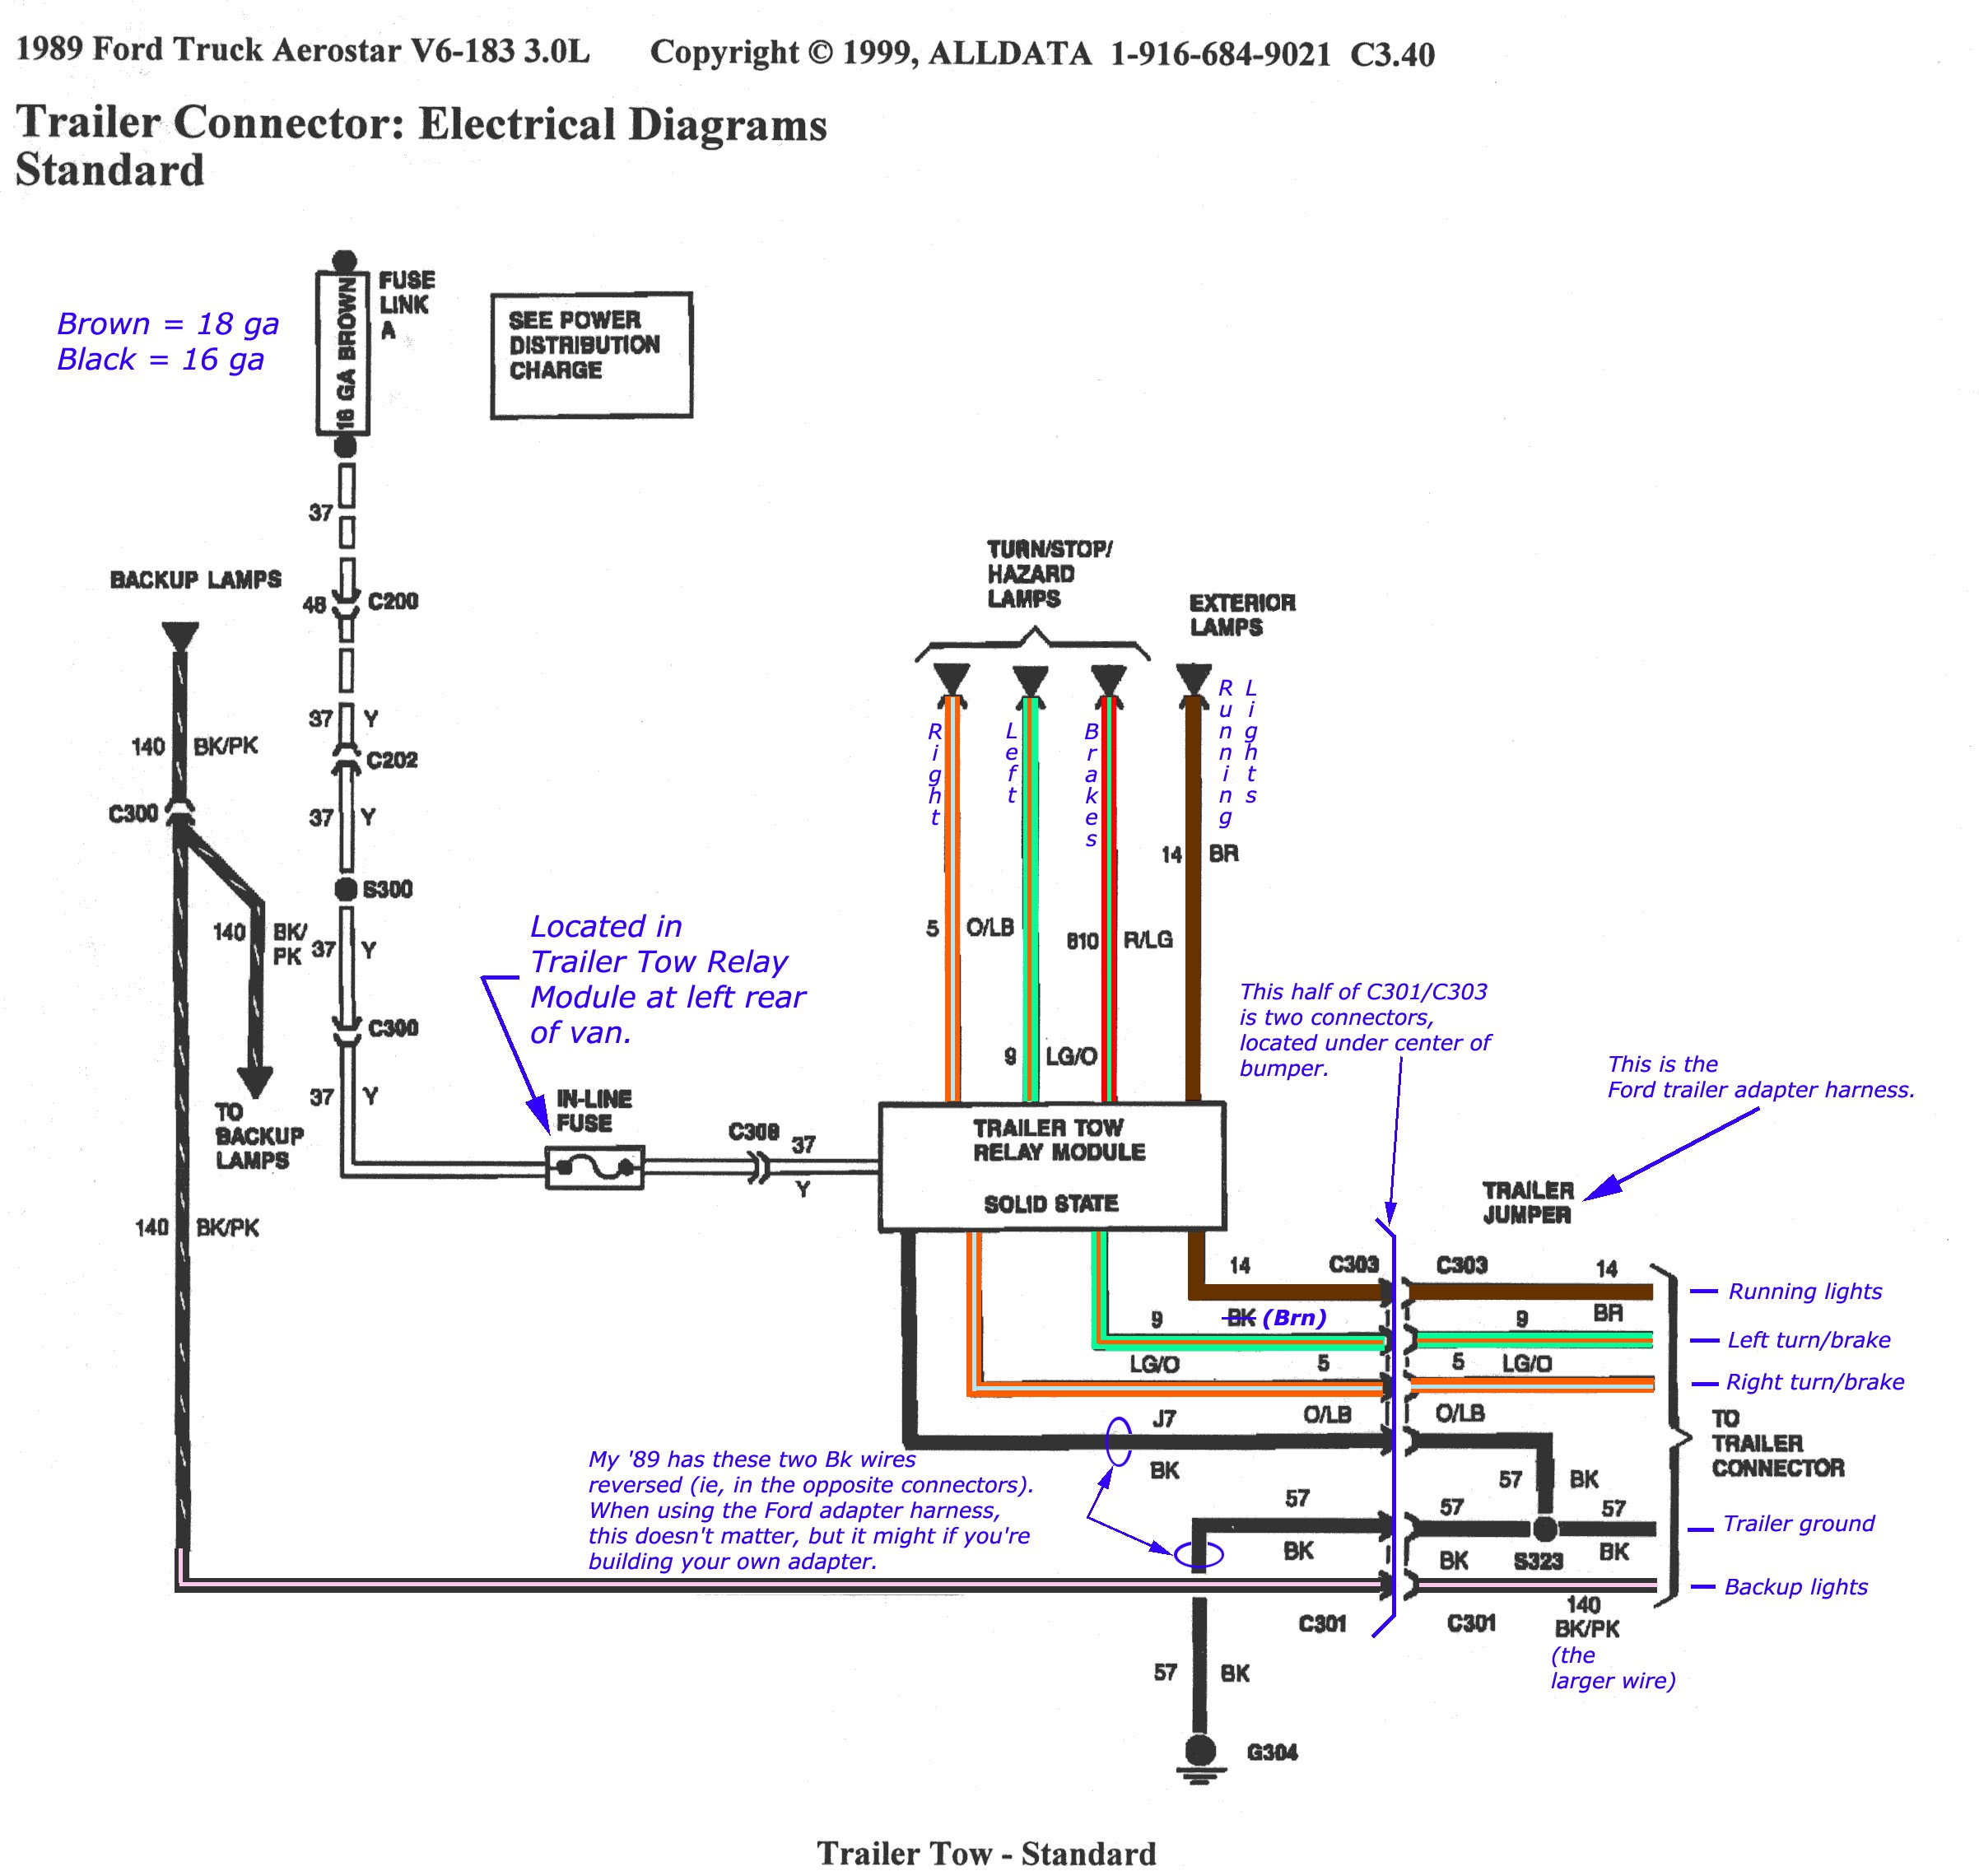 1997 f250 wiring diagram just wiring data rh ag skiphire co uk 2014 ford  f350 trailer wiring diagram